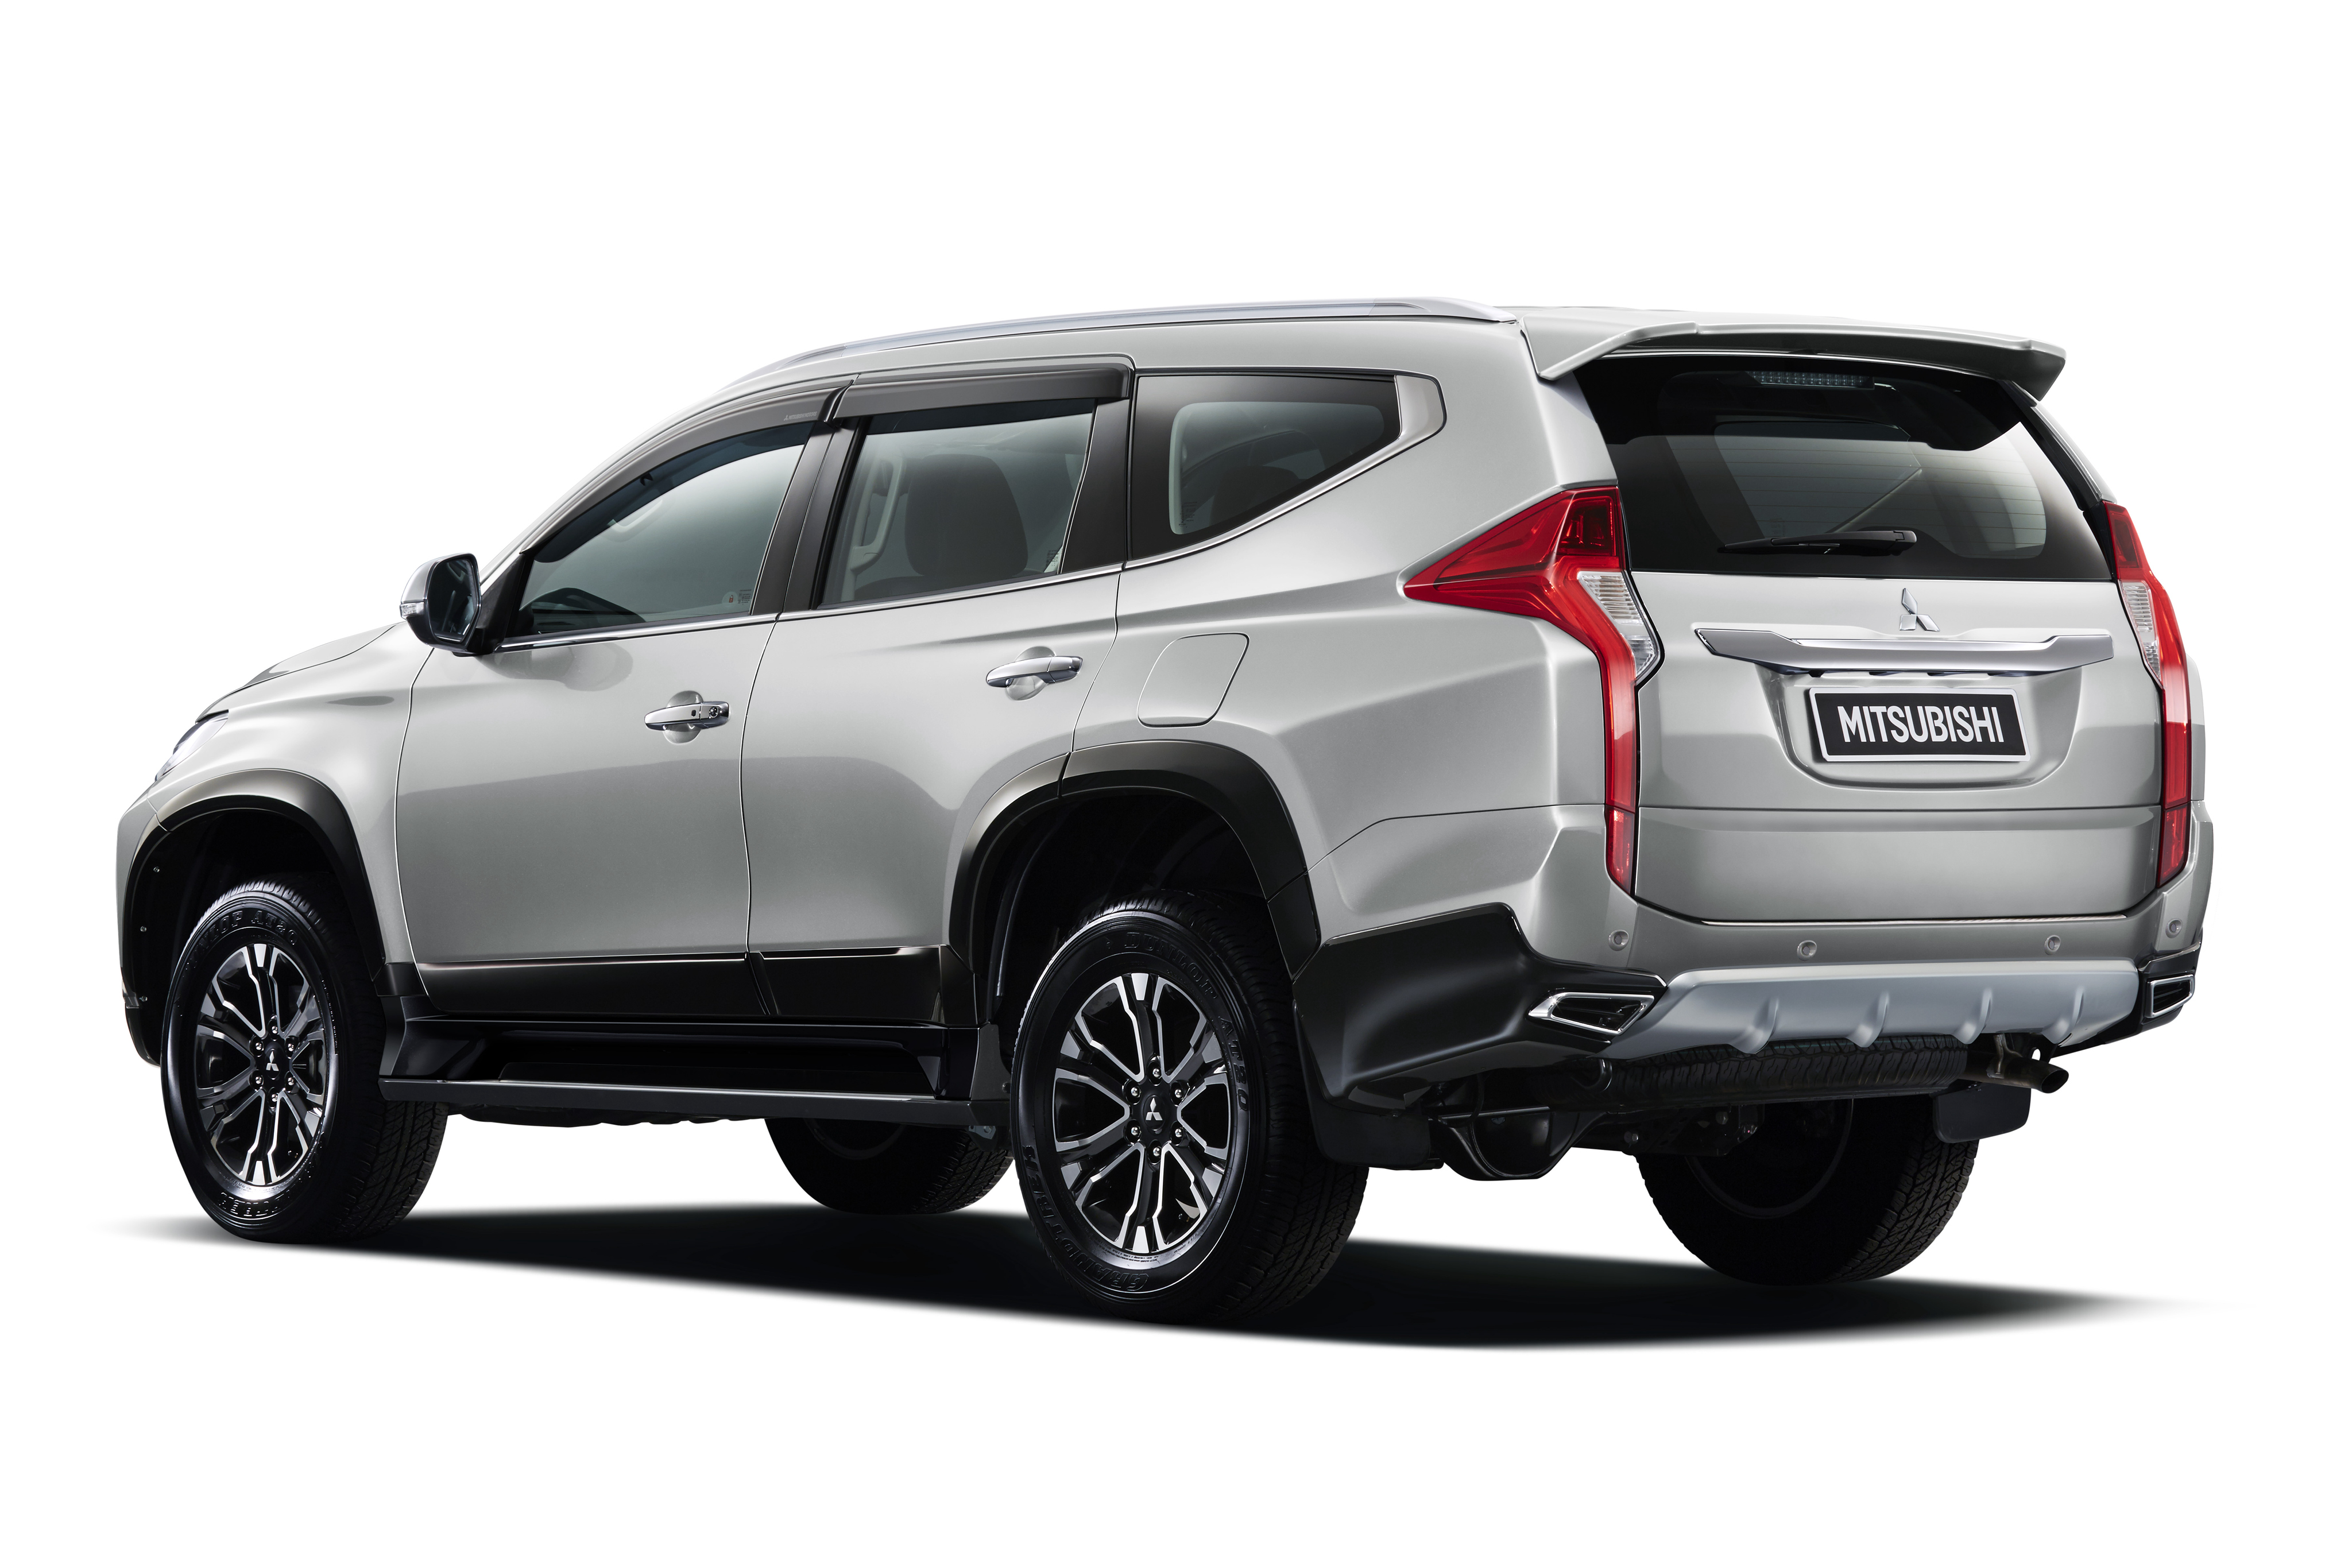 2018 Pajero Sport >> 2016 Mitsubishi Pajero Sport – new Triton-based ladder frame SUV makes global debut in Thailand ...